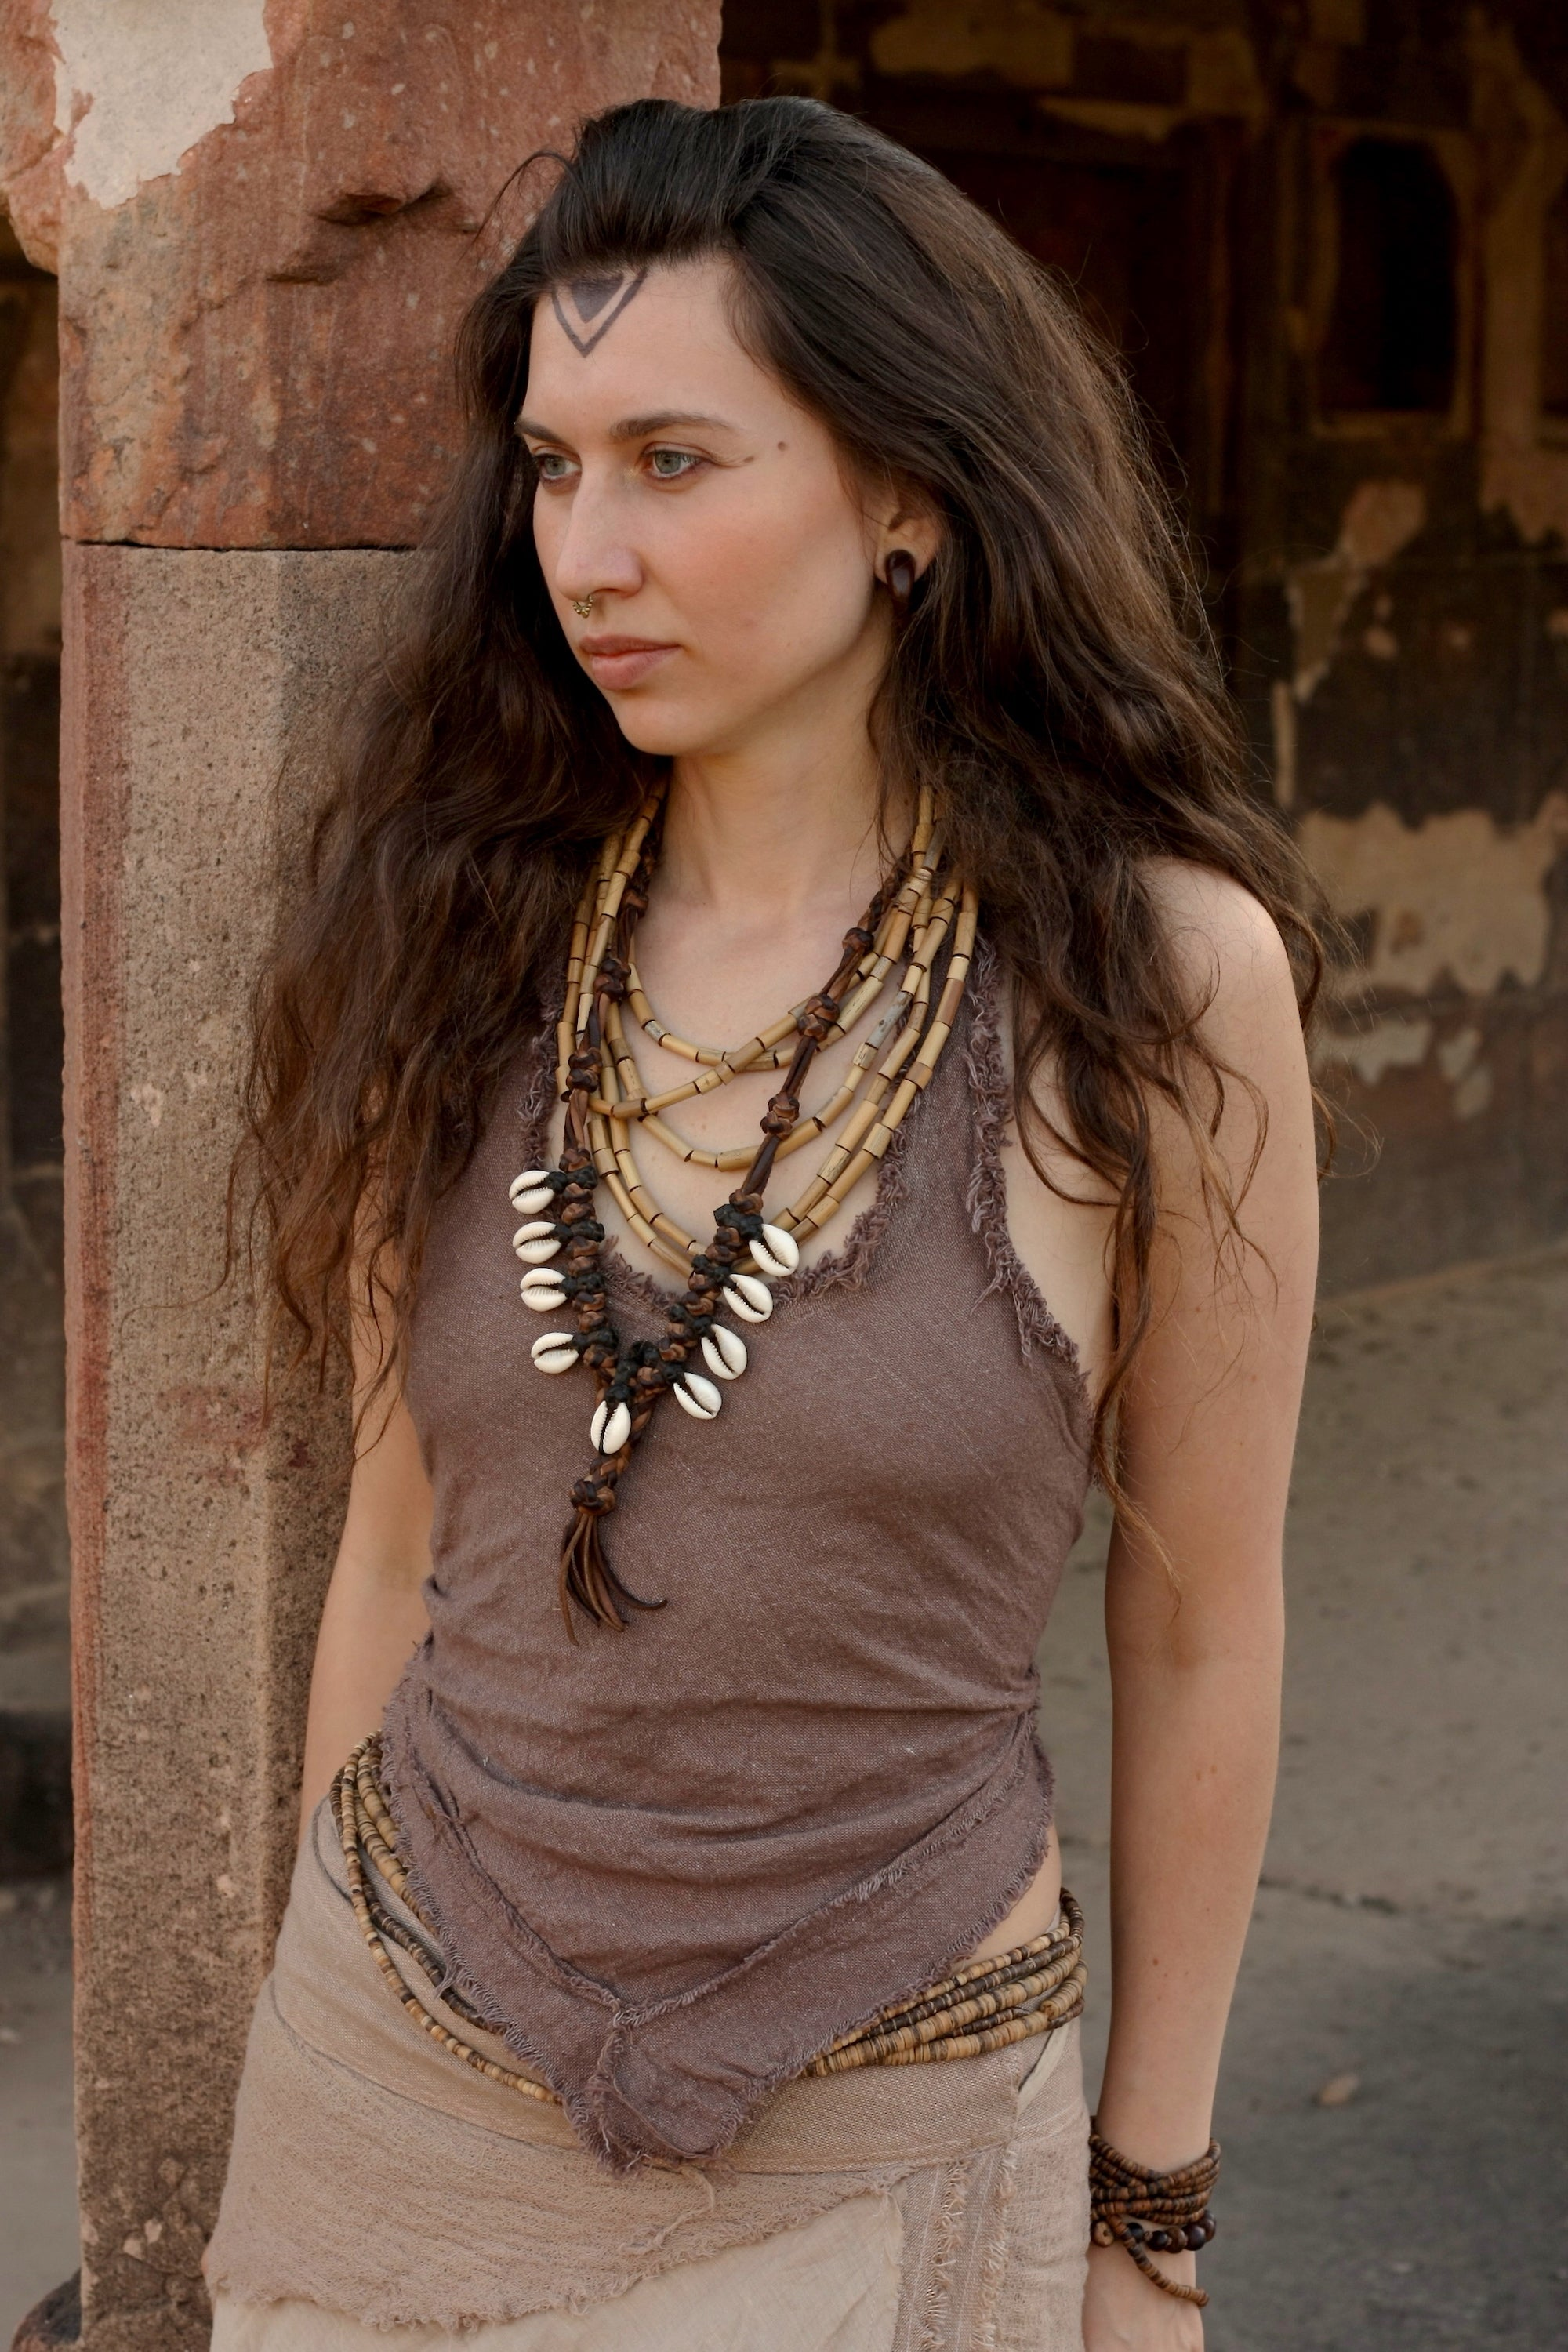 Backless Halter Top with Frayed edges - Brown cotton